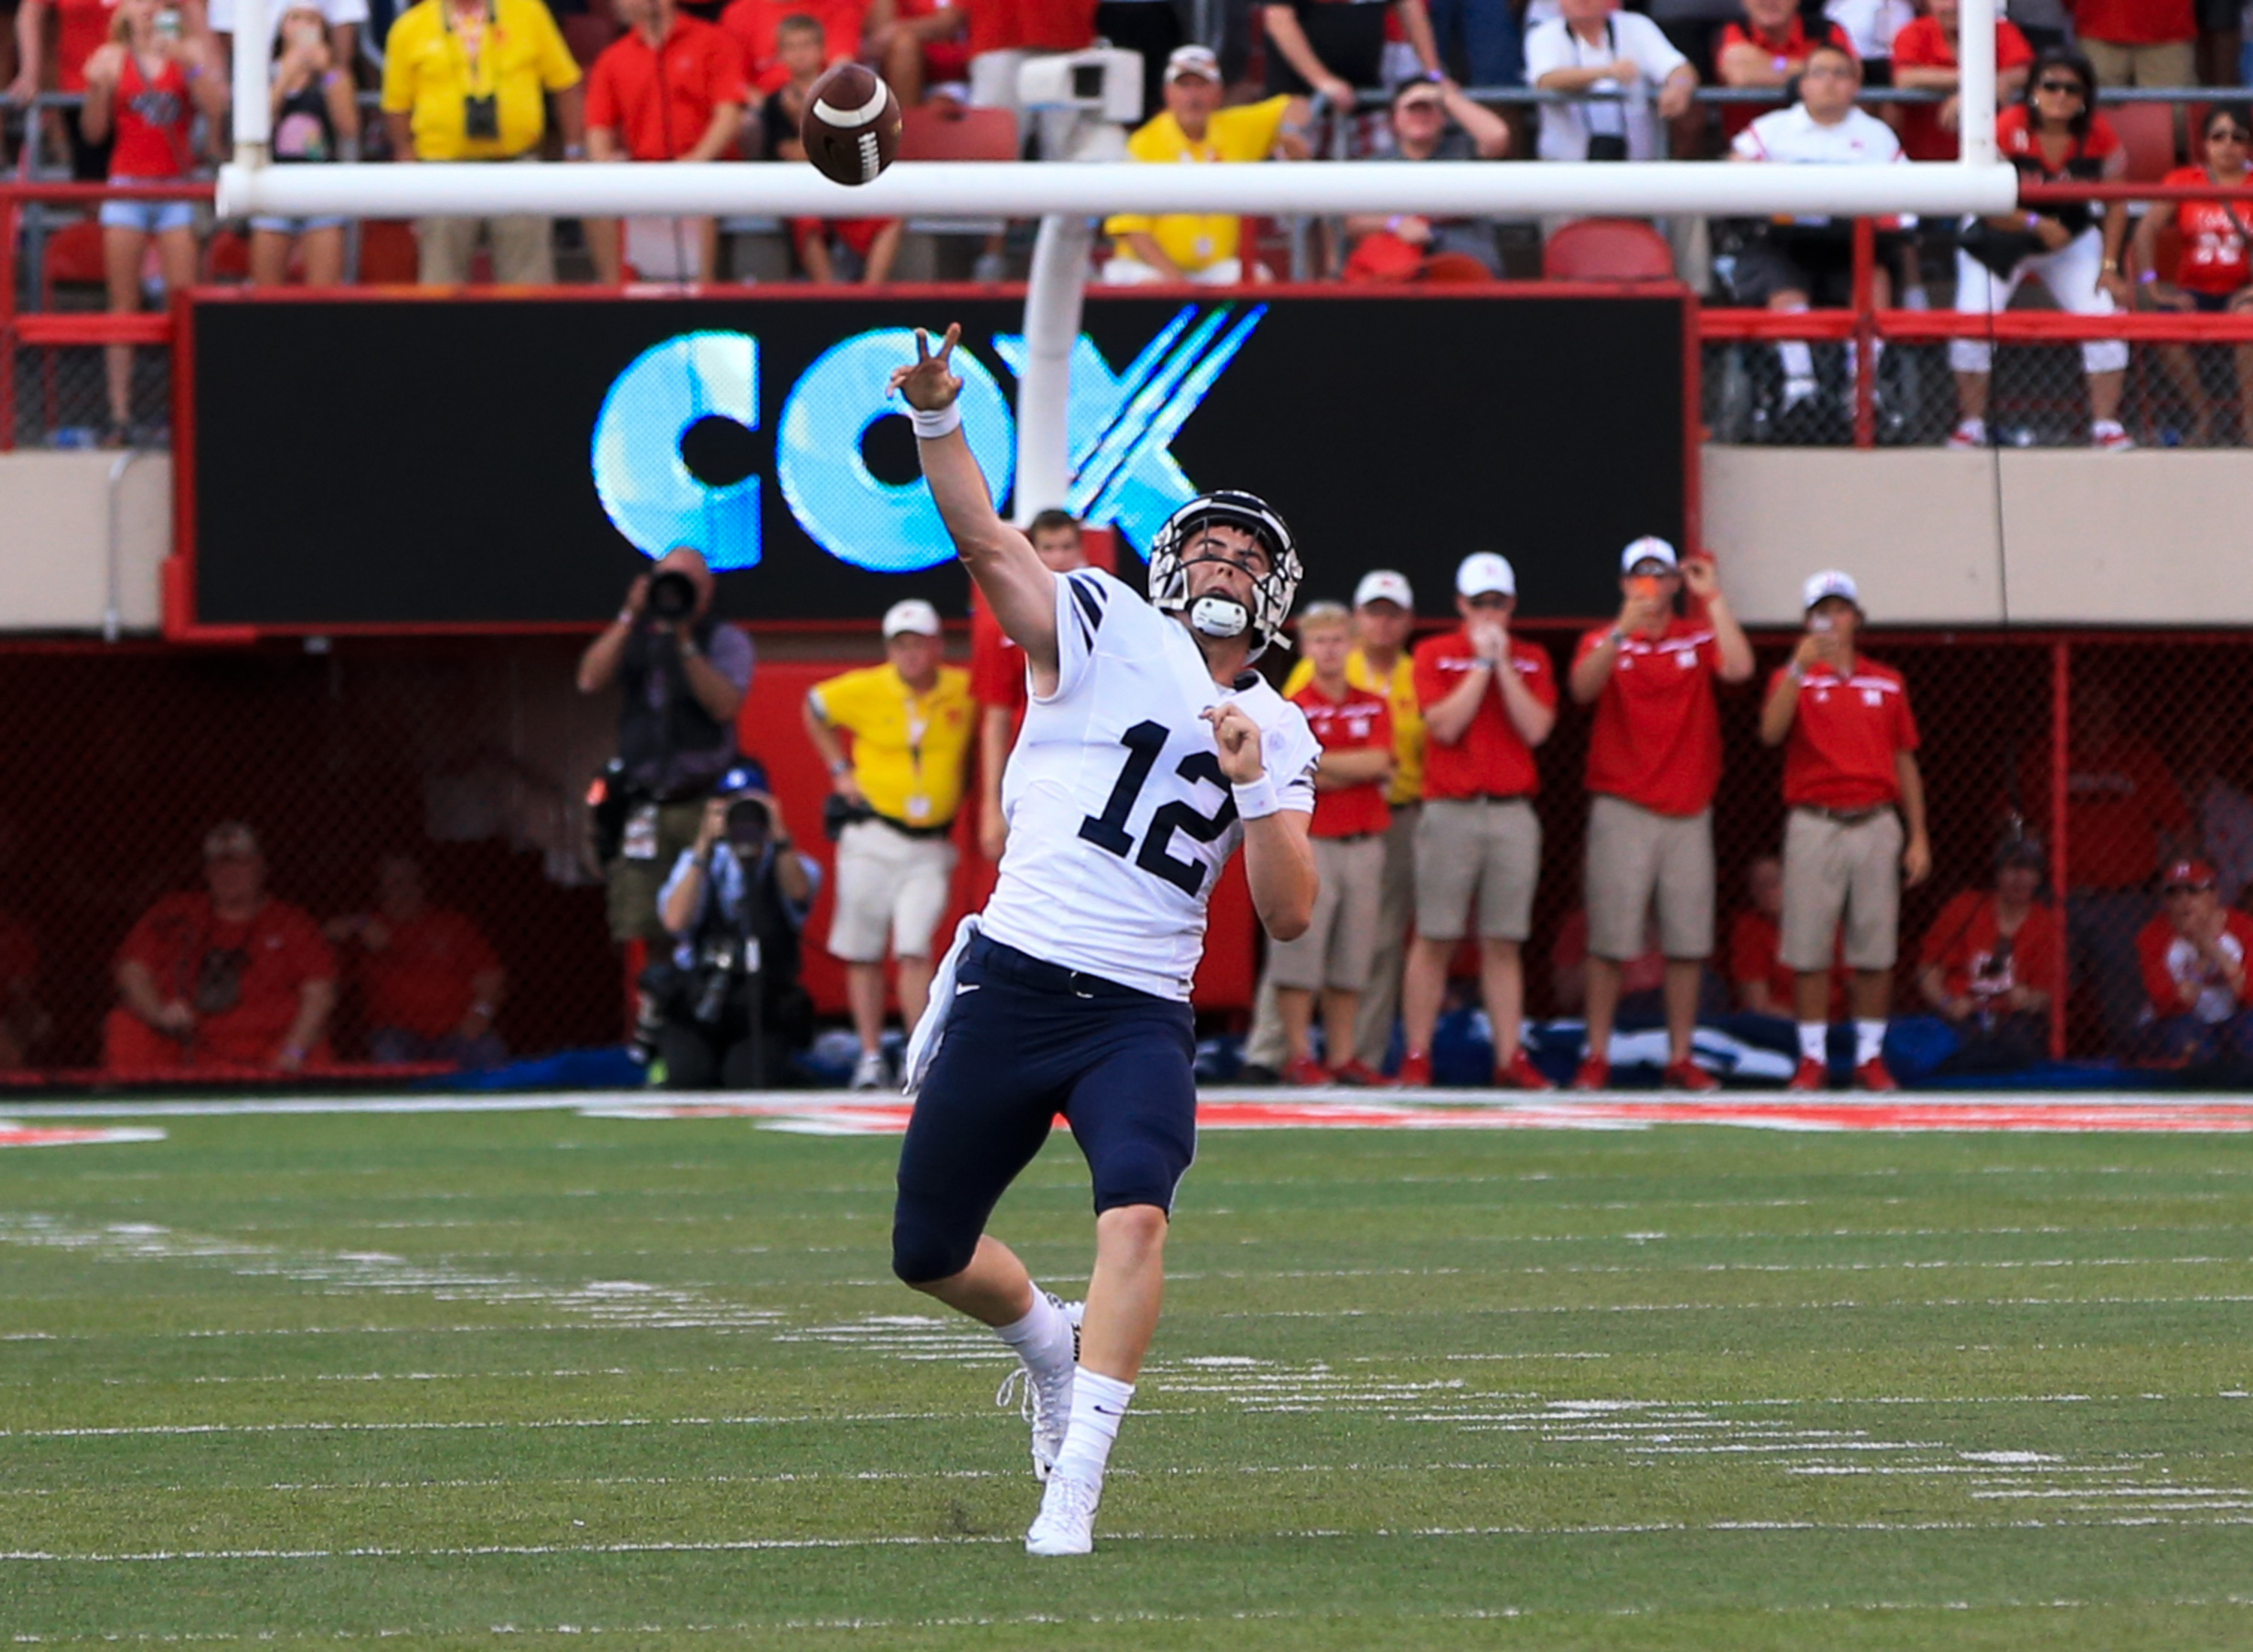 BYU quarterback Tanner Mangum throws a 42-yard Hail Mary with no time left, which was caught for the game-winning touchdown by wide receiver Mitch Mathews, unseen, giving BYU a 33-28 victory over Nebraska. (AP Photo/Nati Harnik)